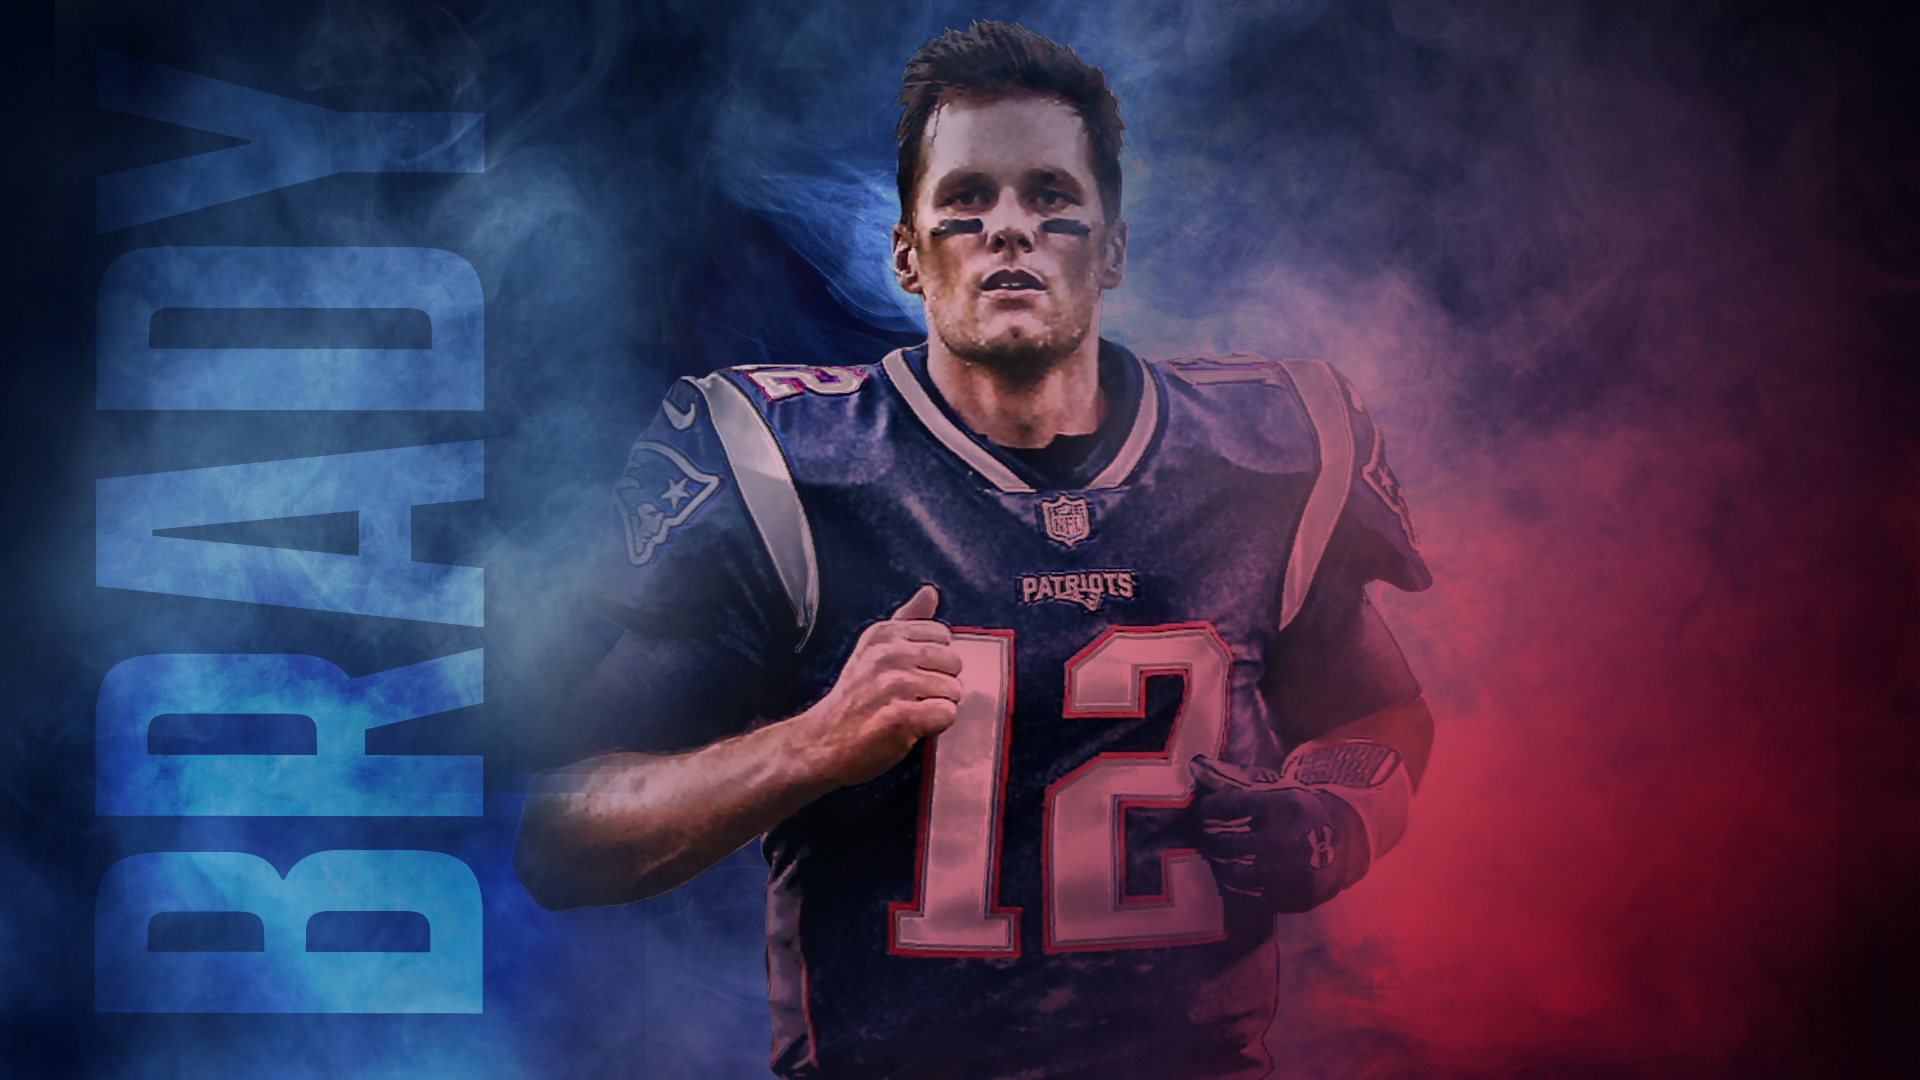 Official website of the New England Patriots 1920x1080